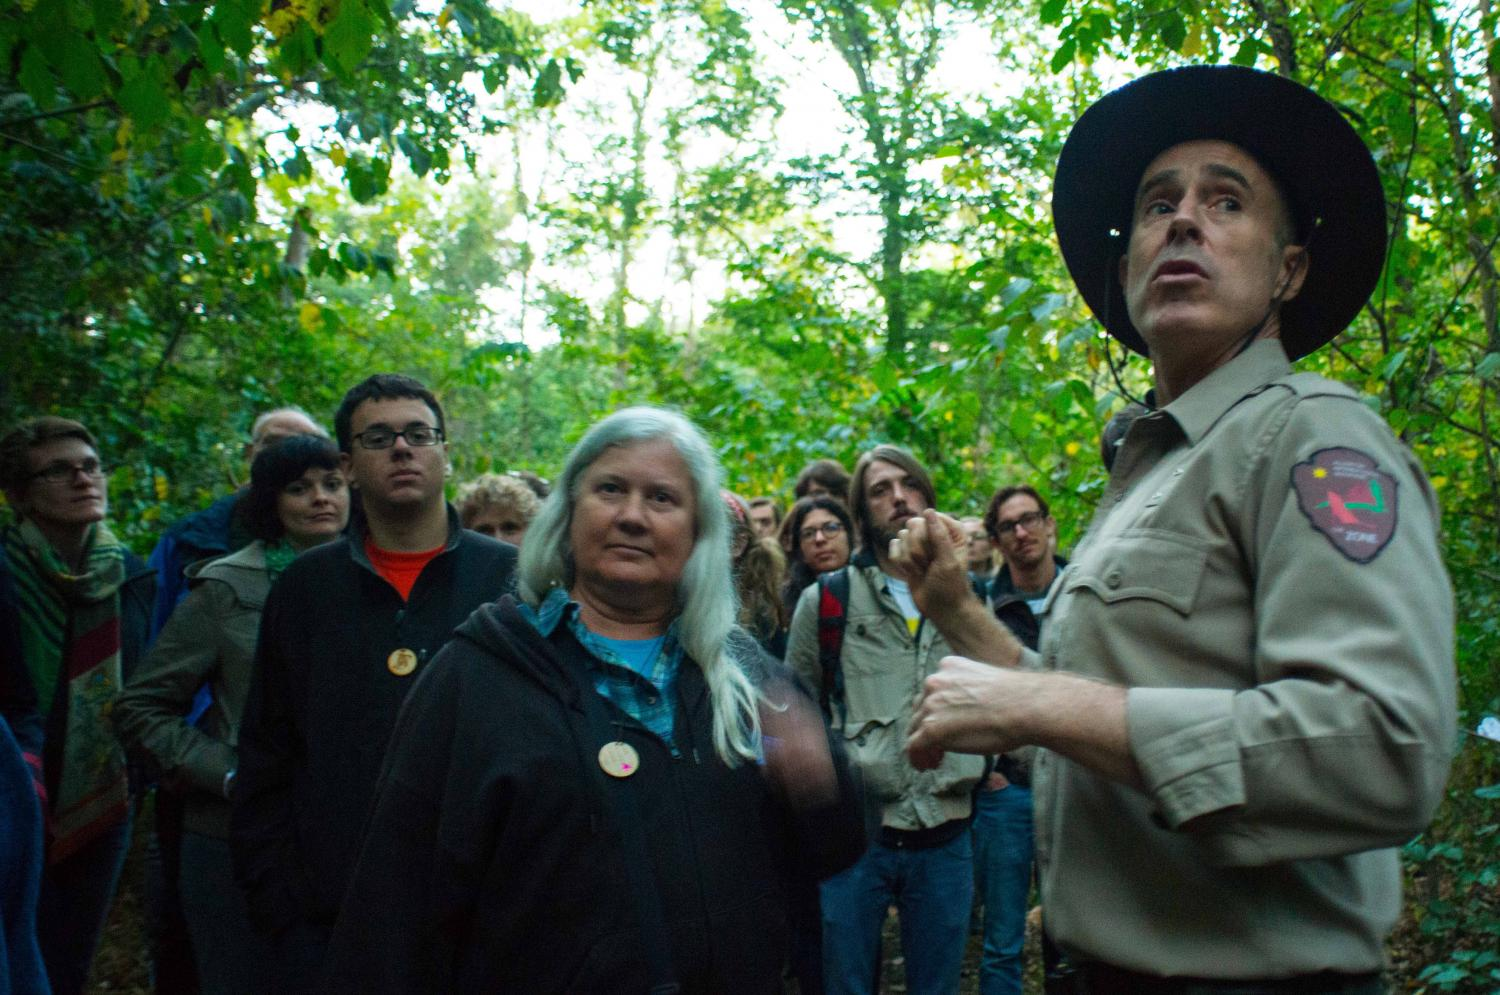 Deke Weaver (as park ranger) interacts with performance participants during The Unreliable Bestiary: Bear, 2017. Photo by Valerie Oliveiro.